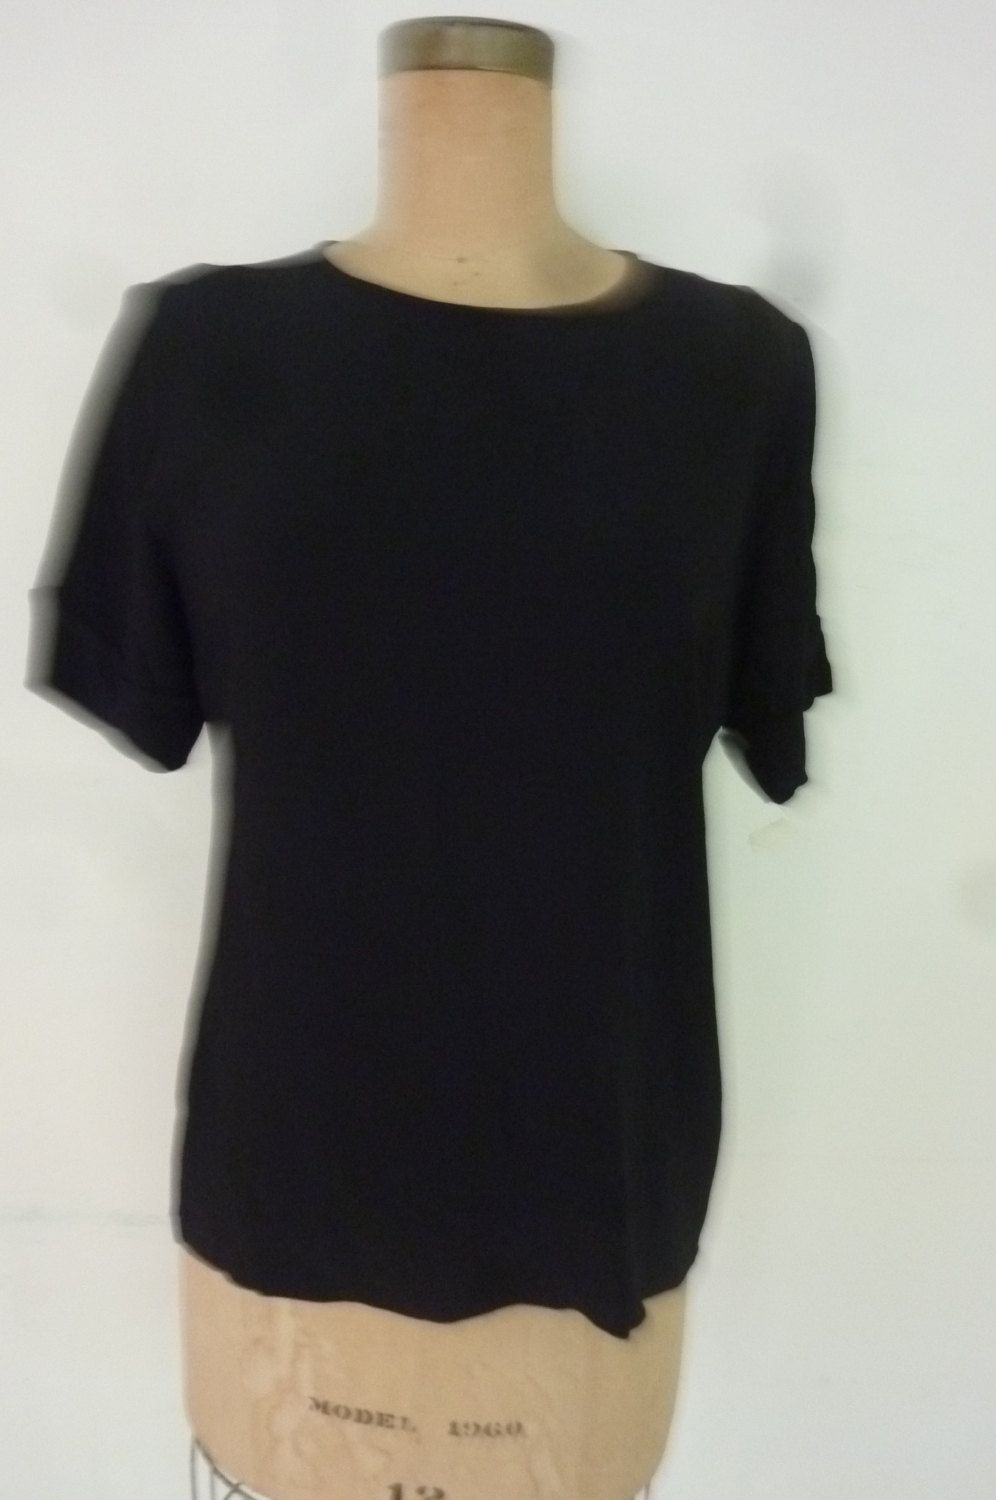 Vintage Yves Saint Laurent Blouse Black Slinky Viscose YSL Short Sleeve Top Made in France Size M Dead Stock 1980's by ZoomVintage on Etsy